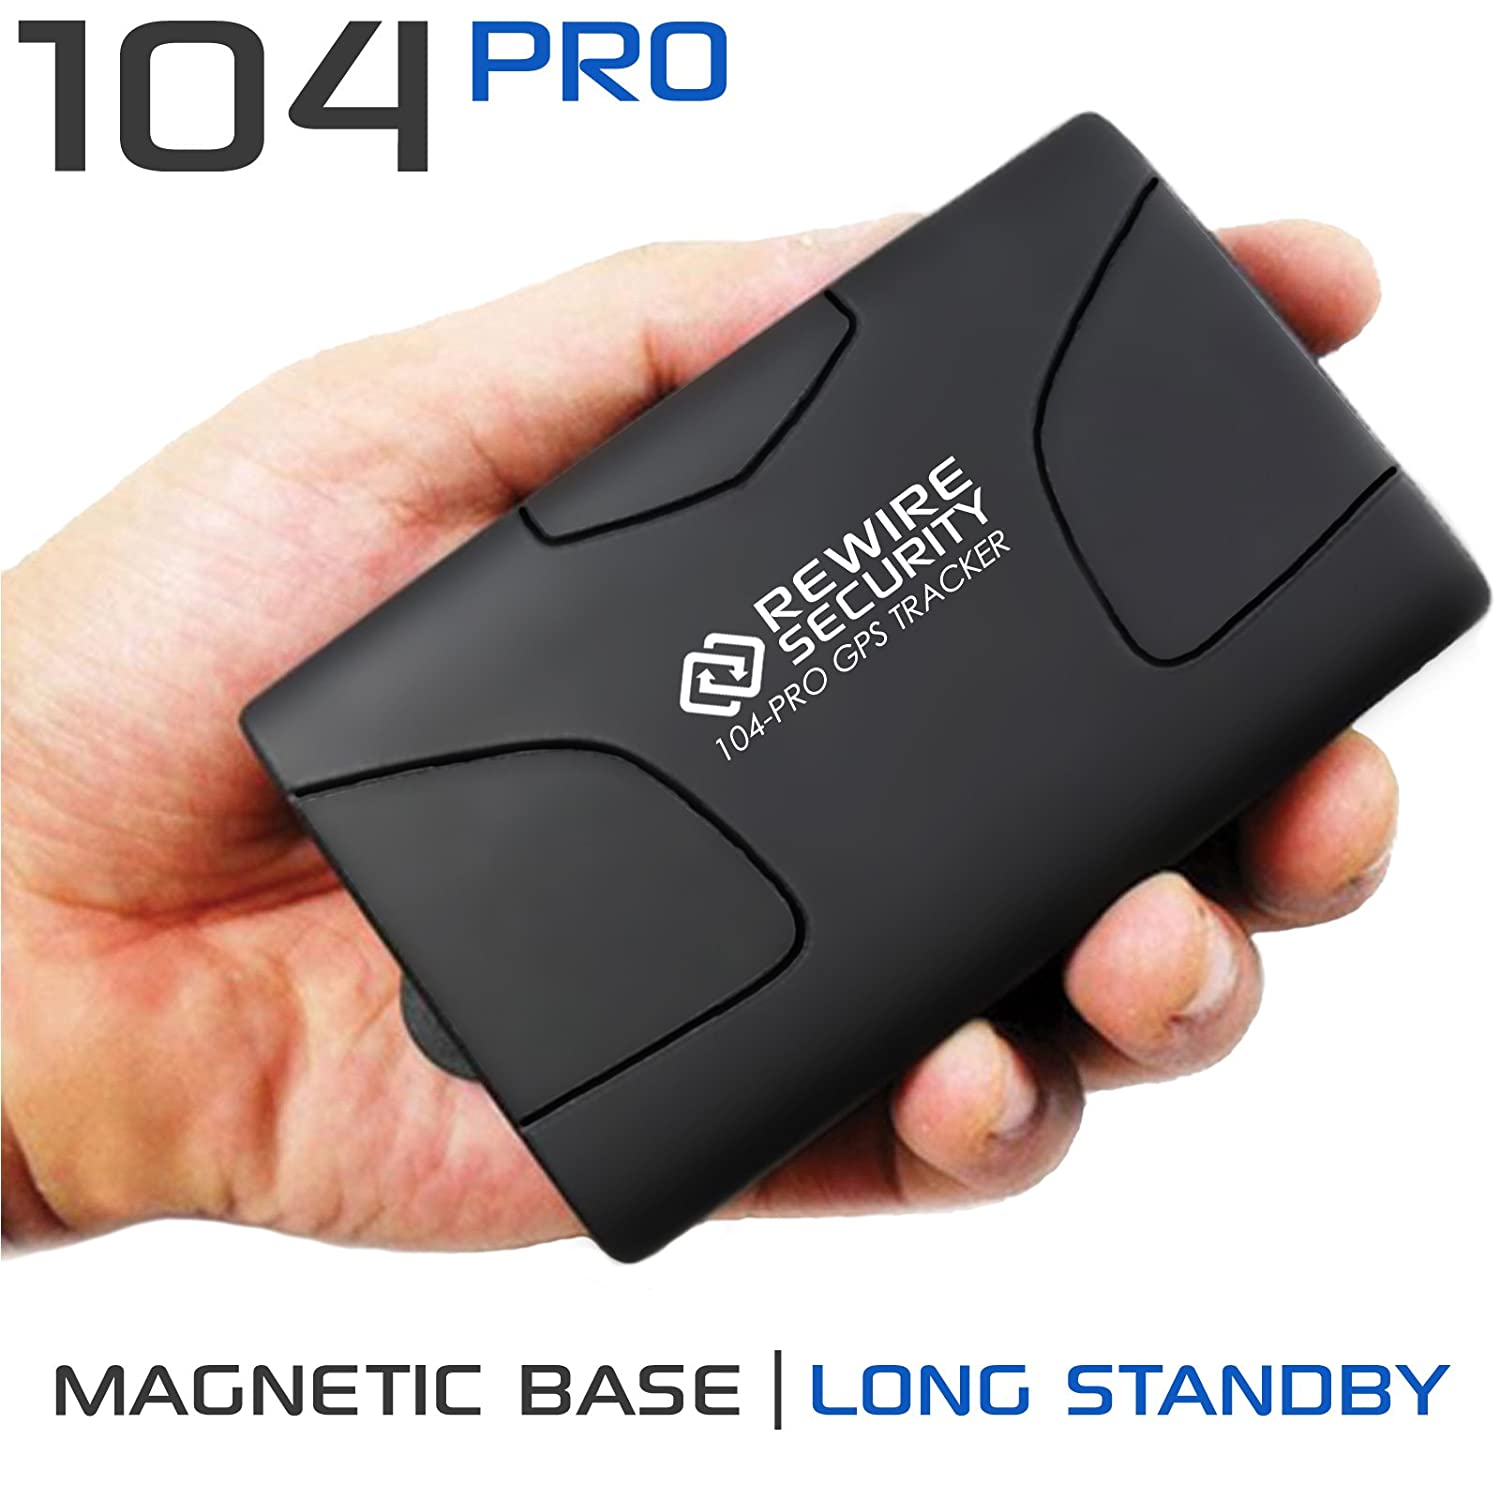 GPS TRACKER MAGNETIC REWIRE SECURITY 104-PRO COVERT HIDDEN VEHICLE TRACKING SYSTEM TK104 104-PRO TK104